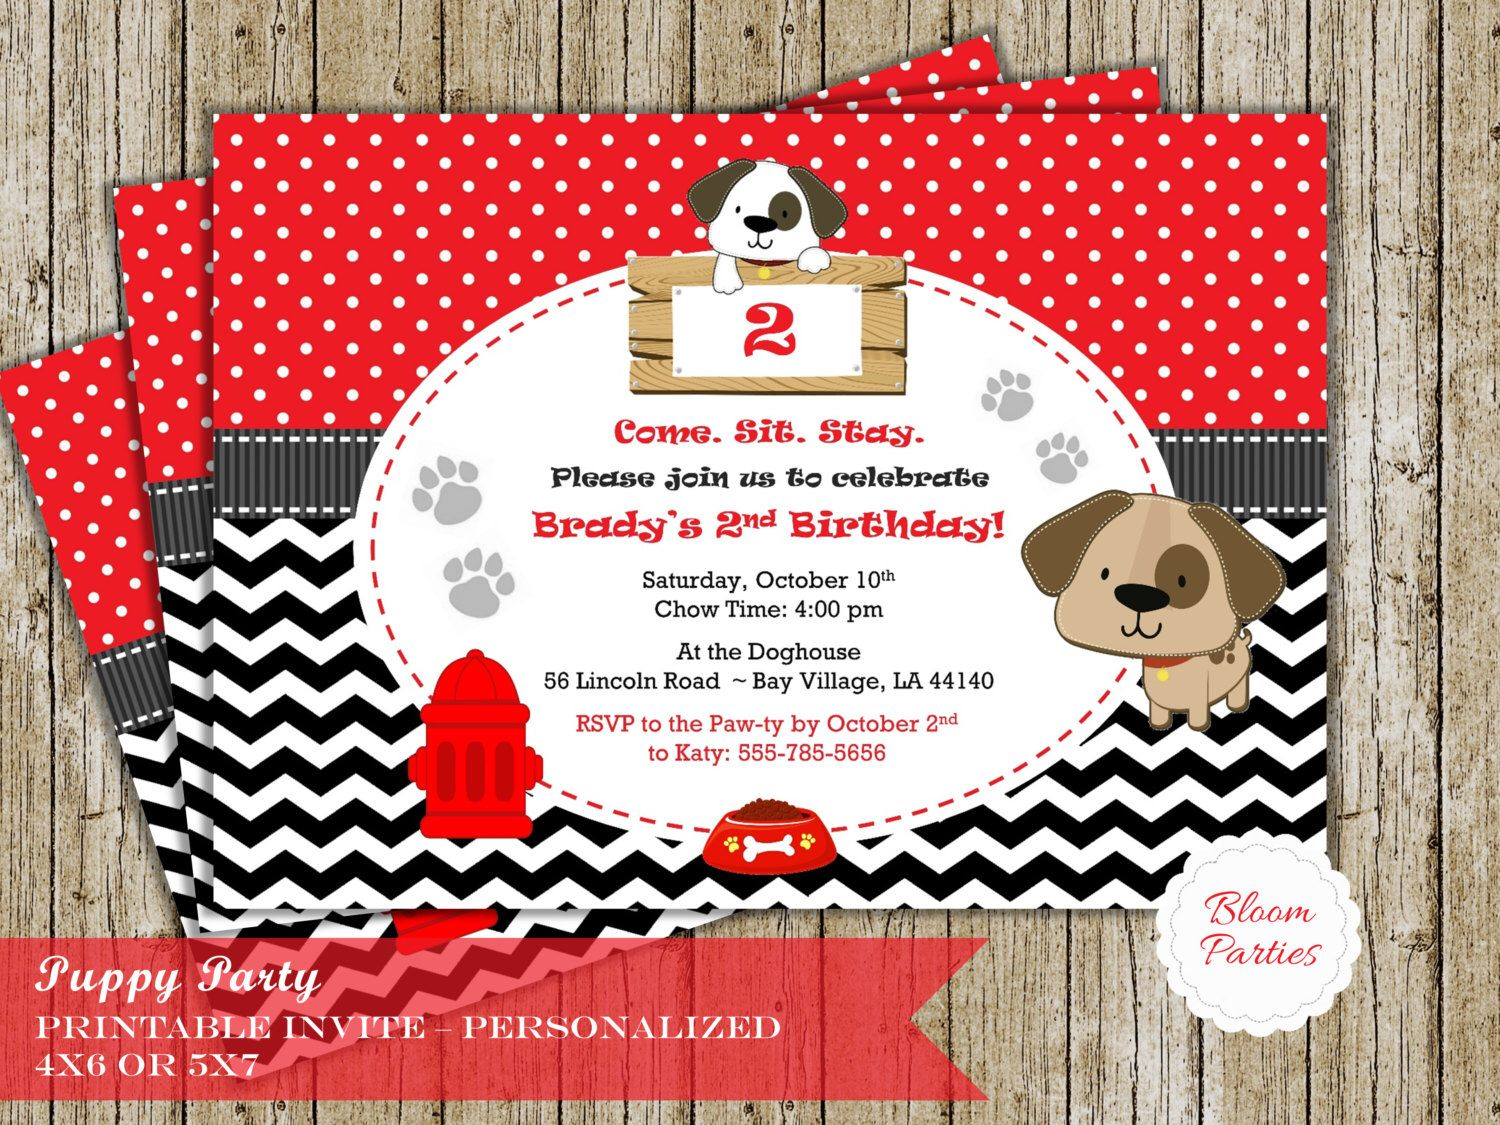 Puppy Party Invitation for Puppy Birthday Party Dog Party Boy or Girl Black Chevron Red Digital Printable Invite by BloomParties on Etsy https://www.etsy.com/listing/260740430/puppy-party-invitation-for-puppy